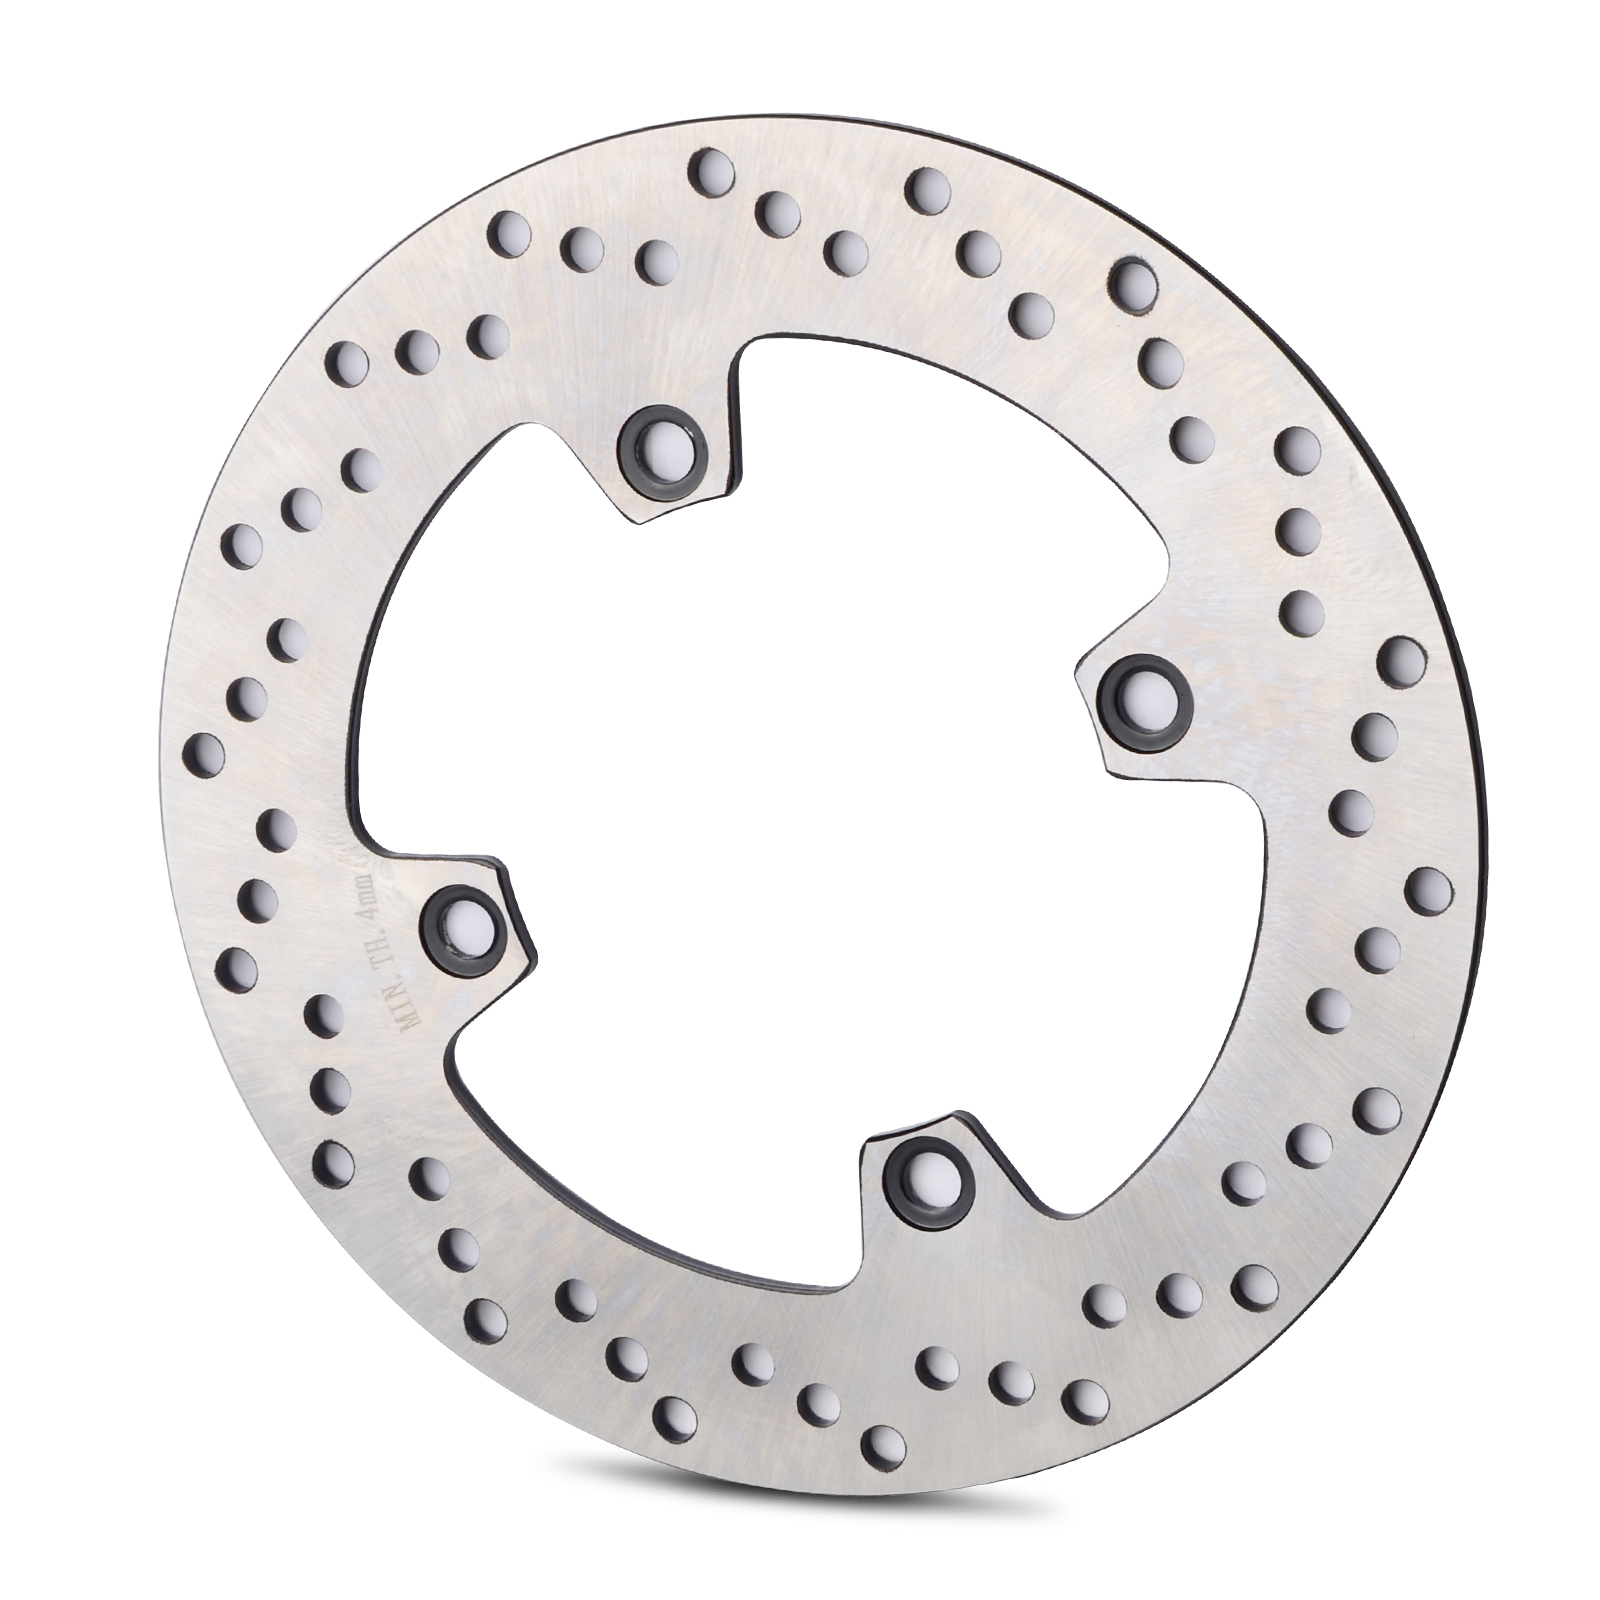 NICECNC Rear Brake Disc Rotor For <font><b>SUZUKI</b></font> <font><b>BURGMAN</b></font> <font><b>AN650</b></font> 2002-2005 250mm x 117mm image